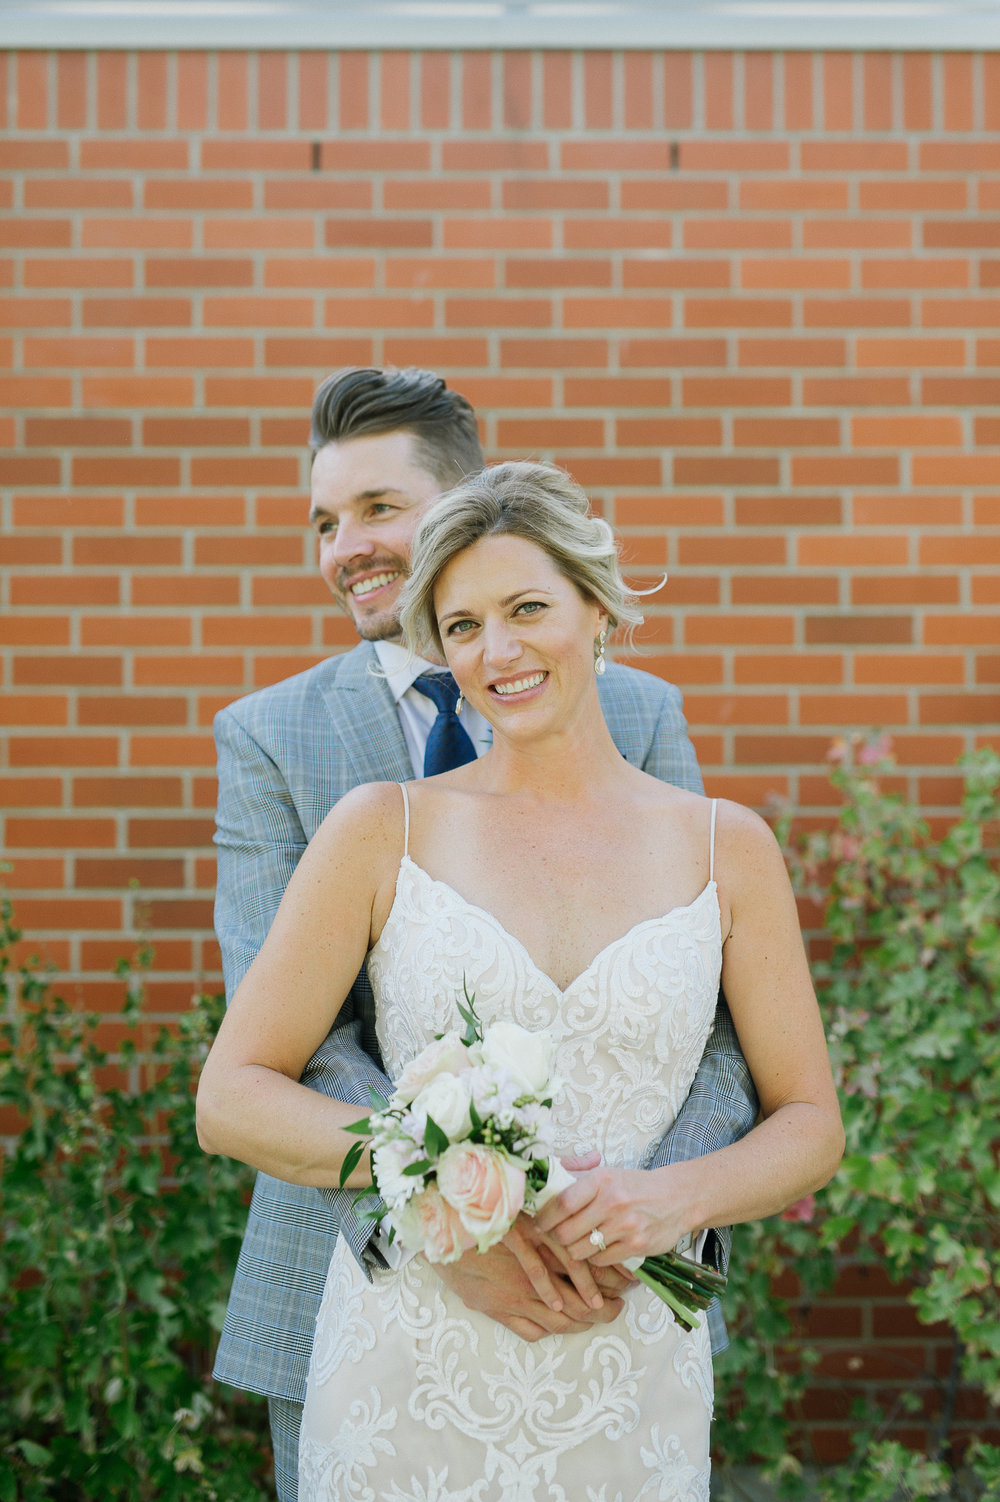 Calgary_Wedding_Photography_Melanie_Jeremy_Elopement_2017 0033.jpg